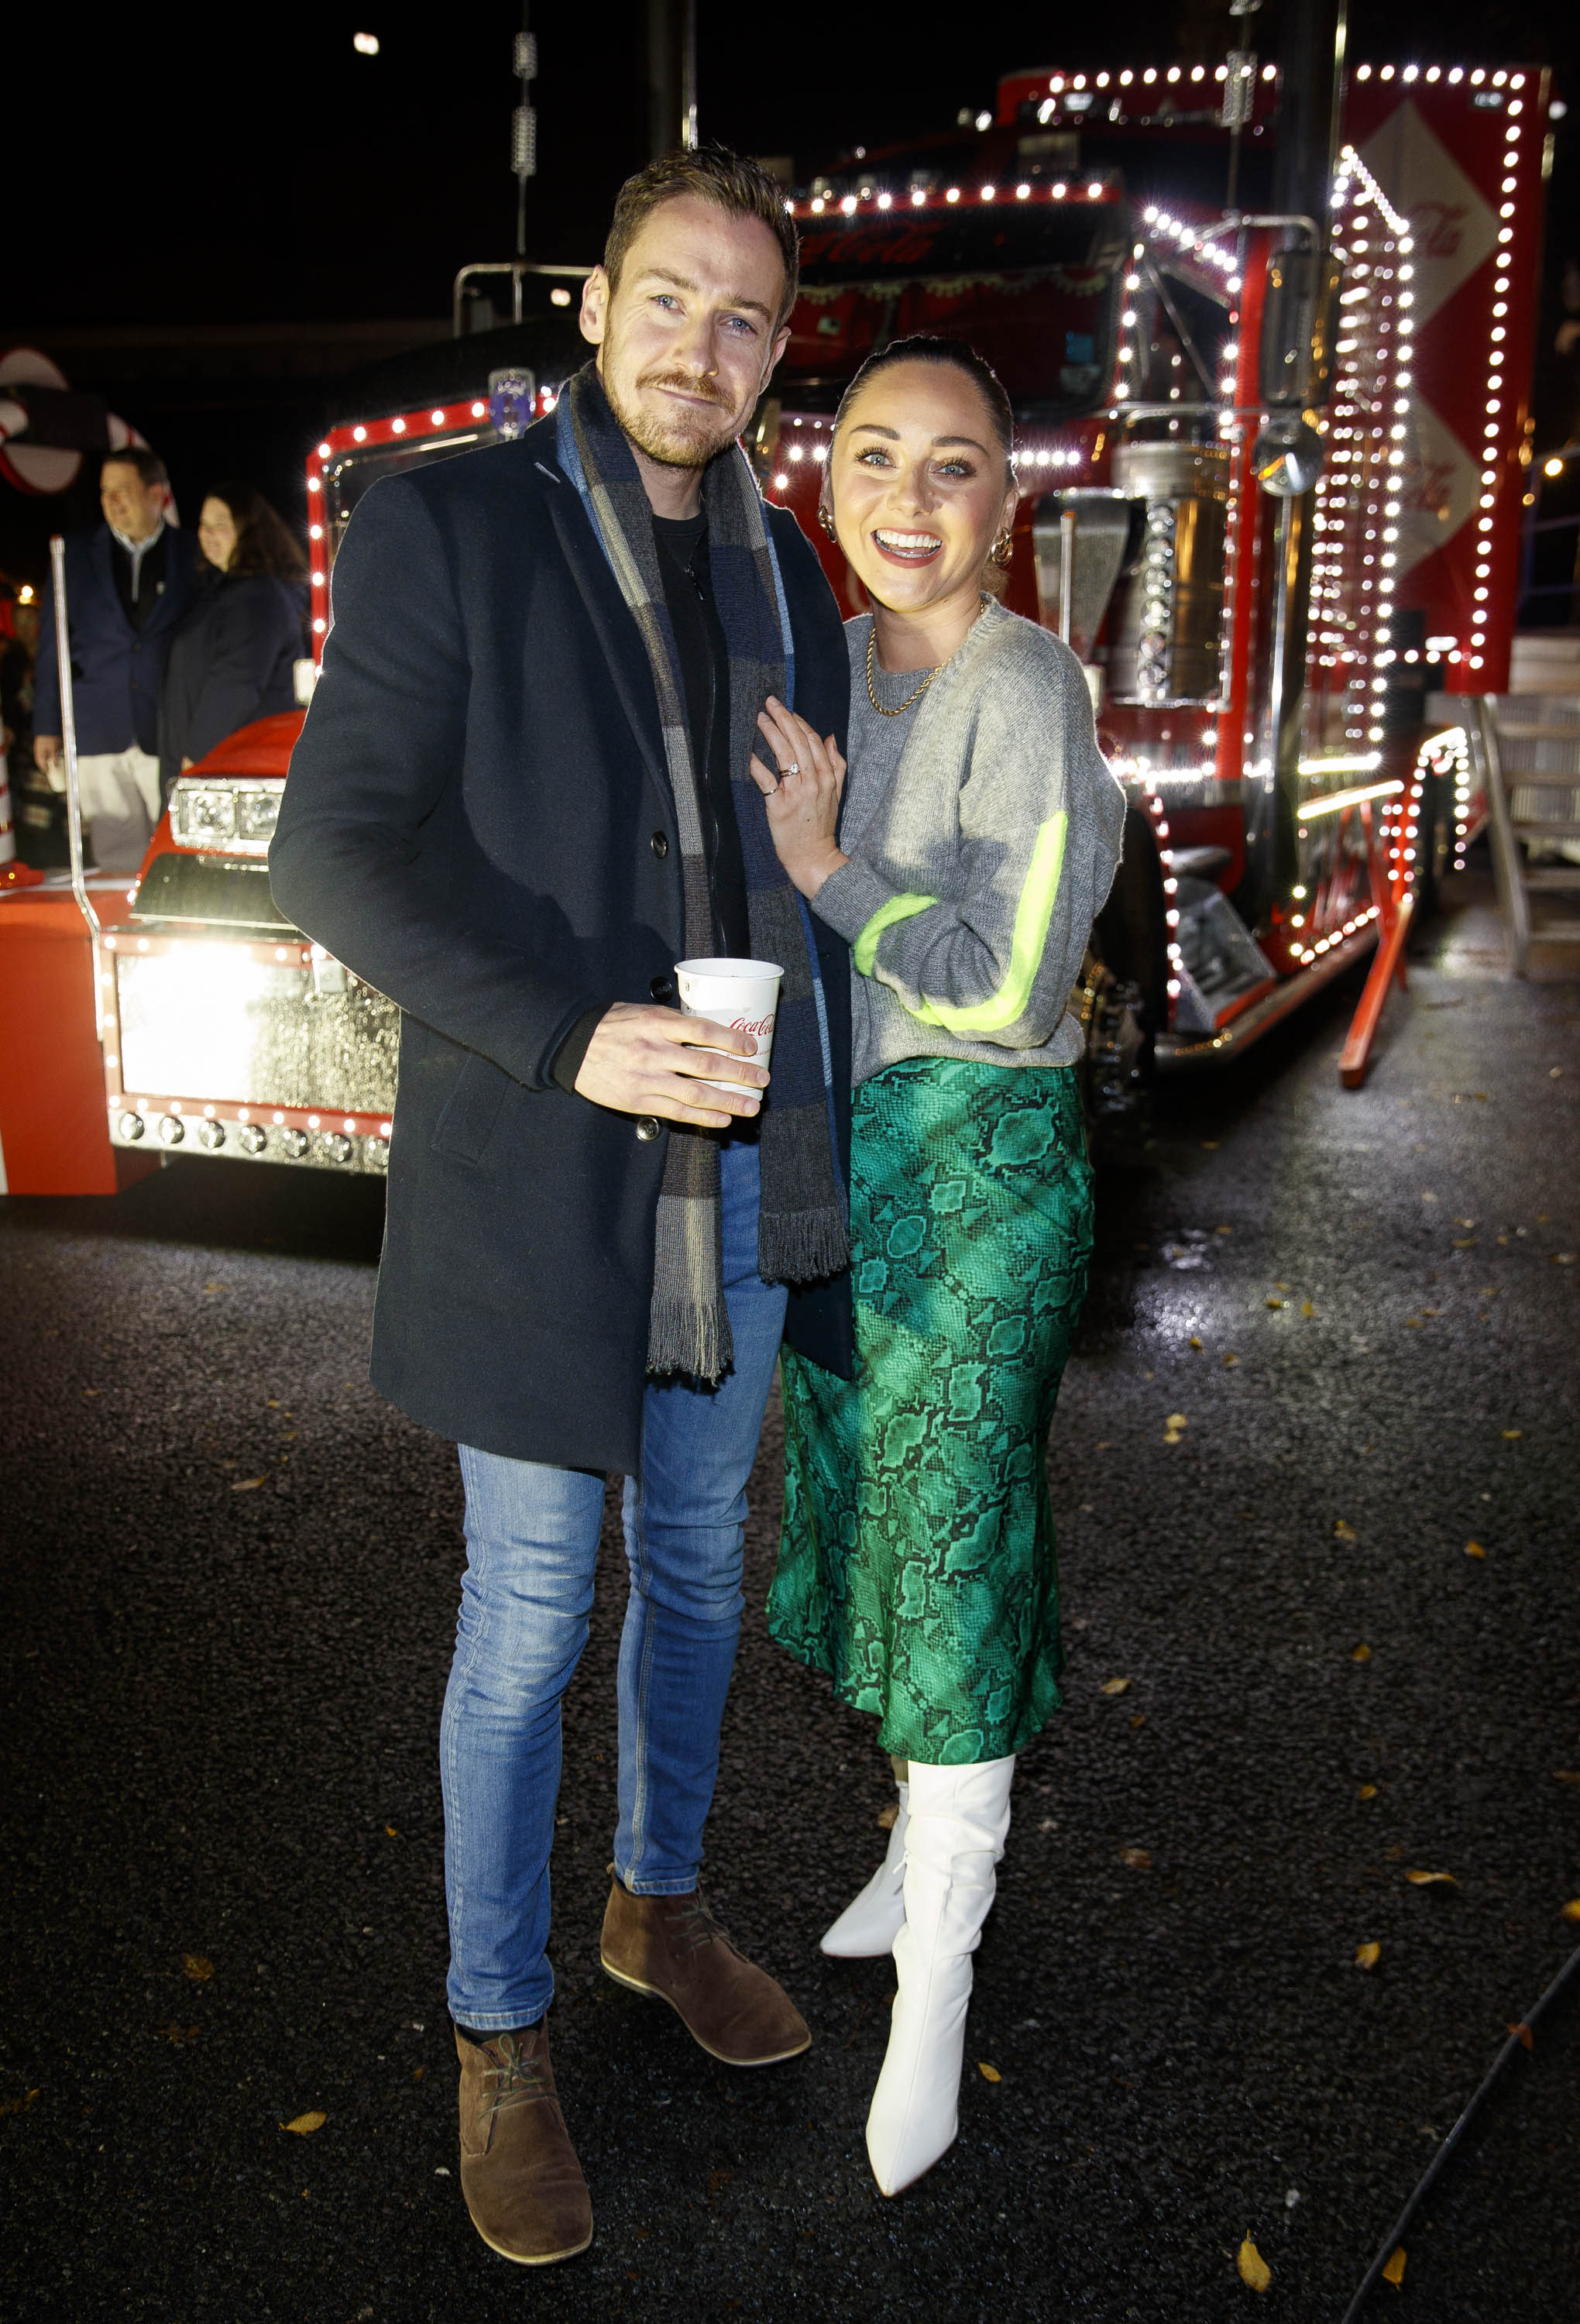 Jack Lowe and Audrey Hammilton pictured at Coca-Cola's Christmas Truck Tour launch which took place Monday 25th November at the RDS, Dublin. Photo: Andres Poveda